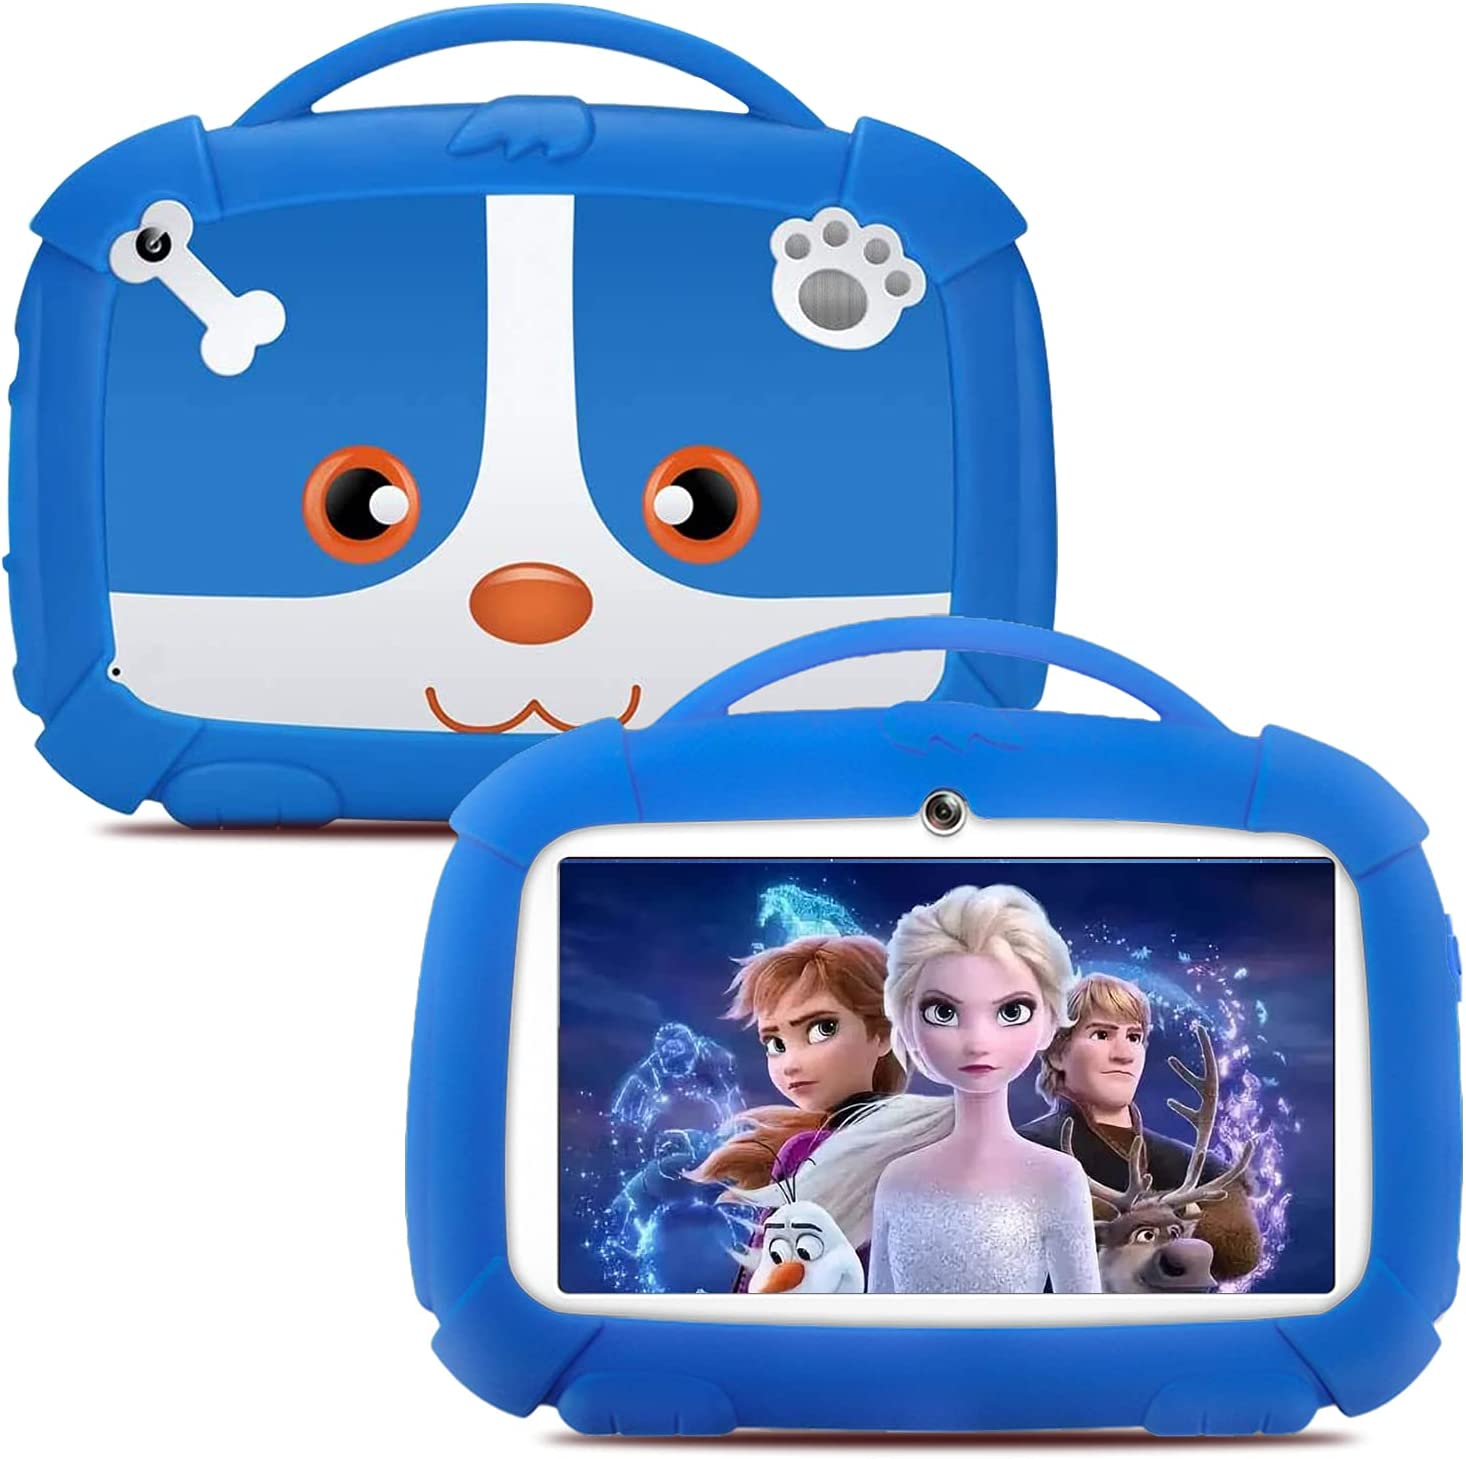 Kids Tablet online shopping Android 8.1 for IPS 40% OFF Cheap Sale Eye 16GB Storage